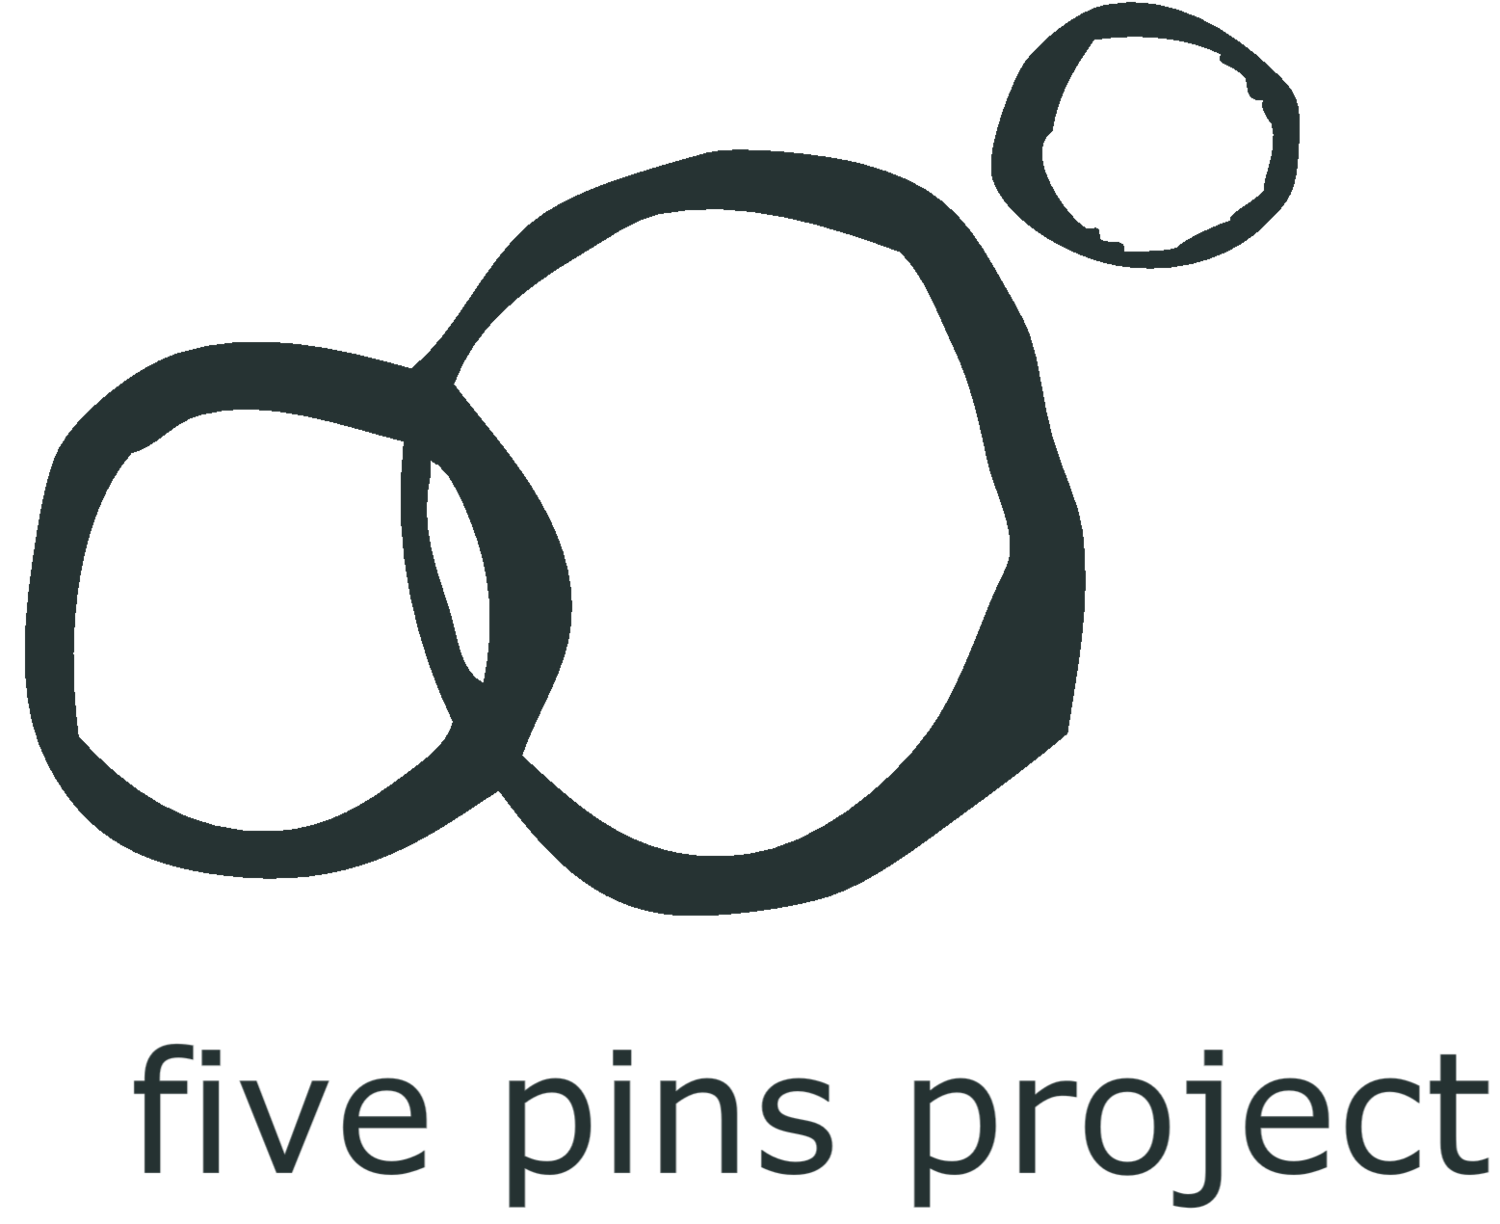 five pins project